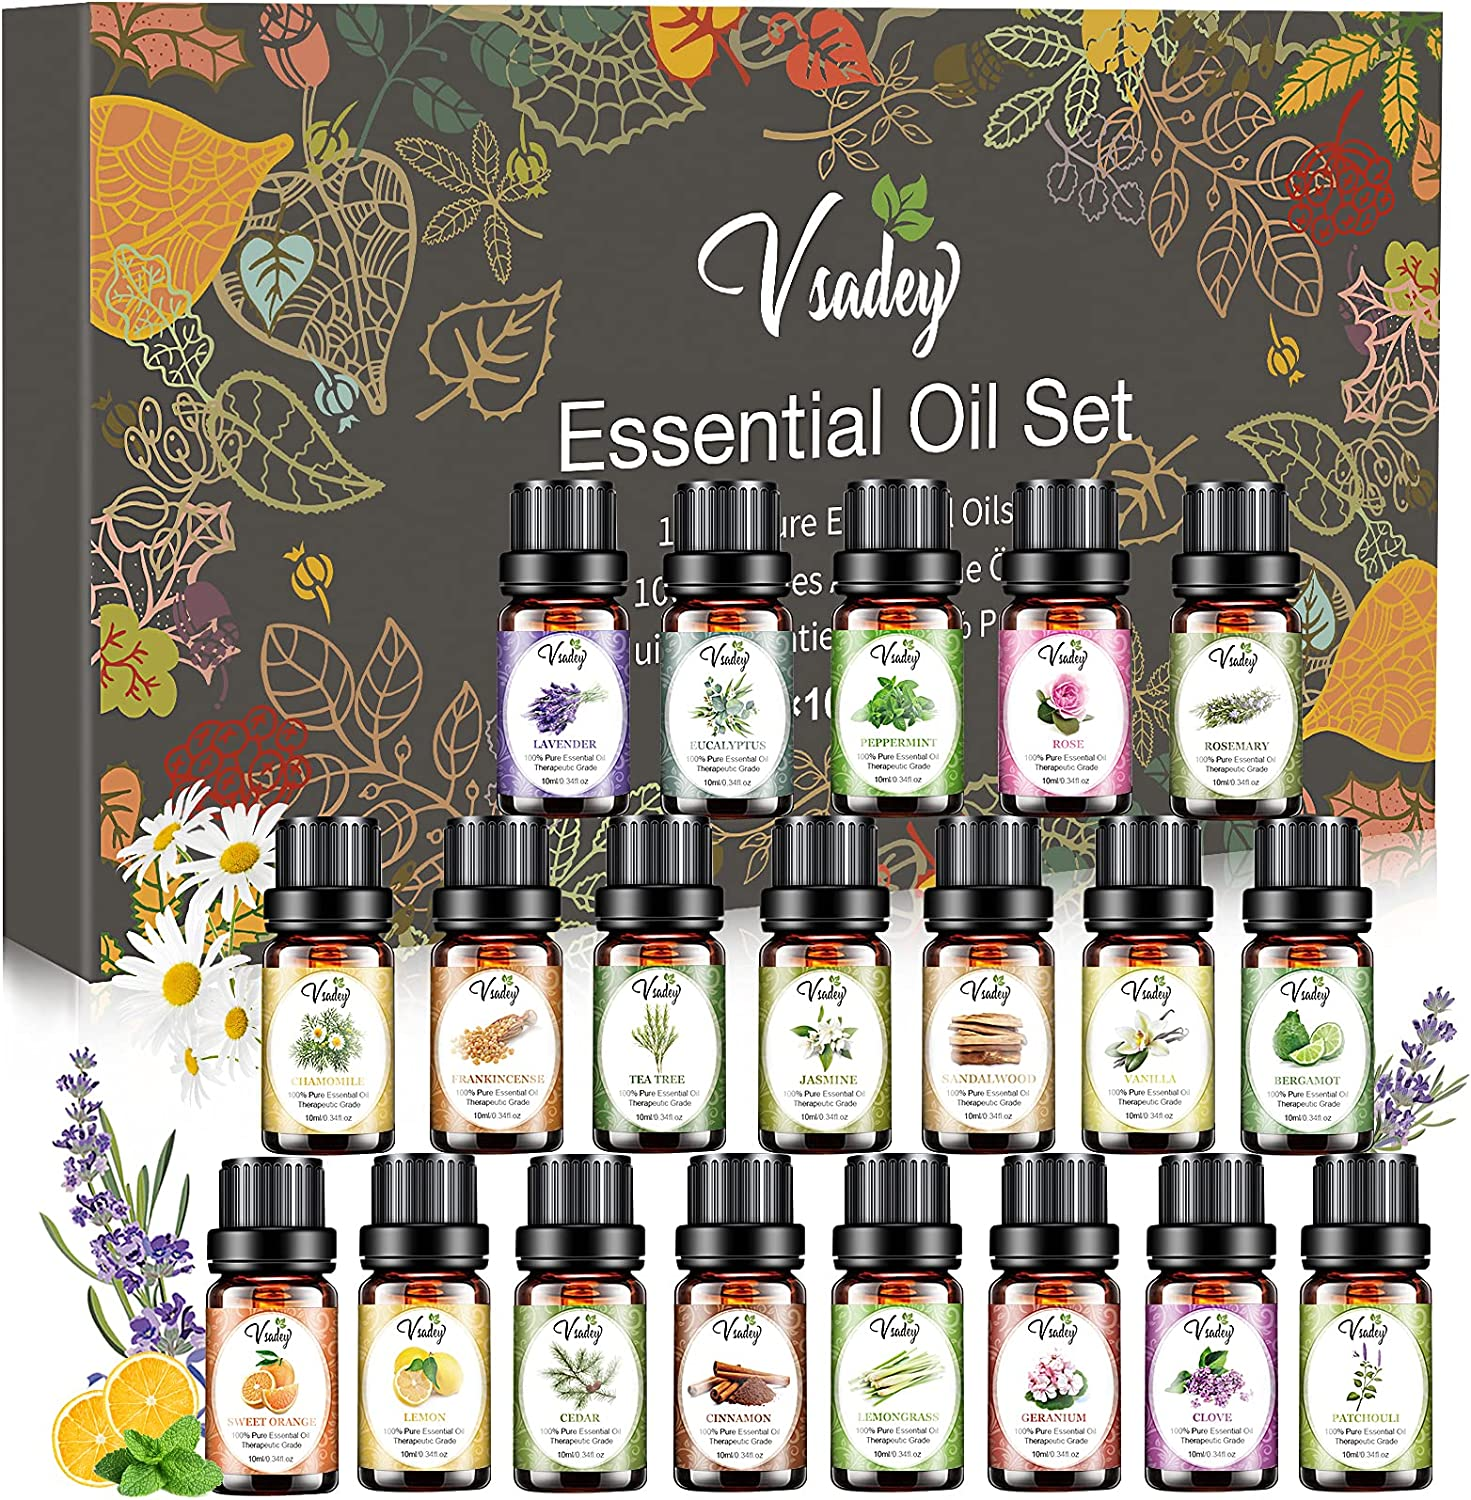 Essential Oils Set, 20*10ml Pure Natural Aromatherapy Oils Kit for Diffuser for Home, Humidifier, Aromatherapy, Massage, Skin & Hair Care - Lavender, Tea Tree, Eucalyptus, Sweet Orange and Sandalwood